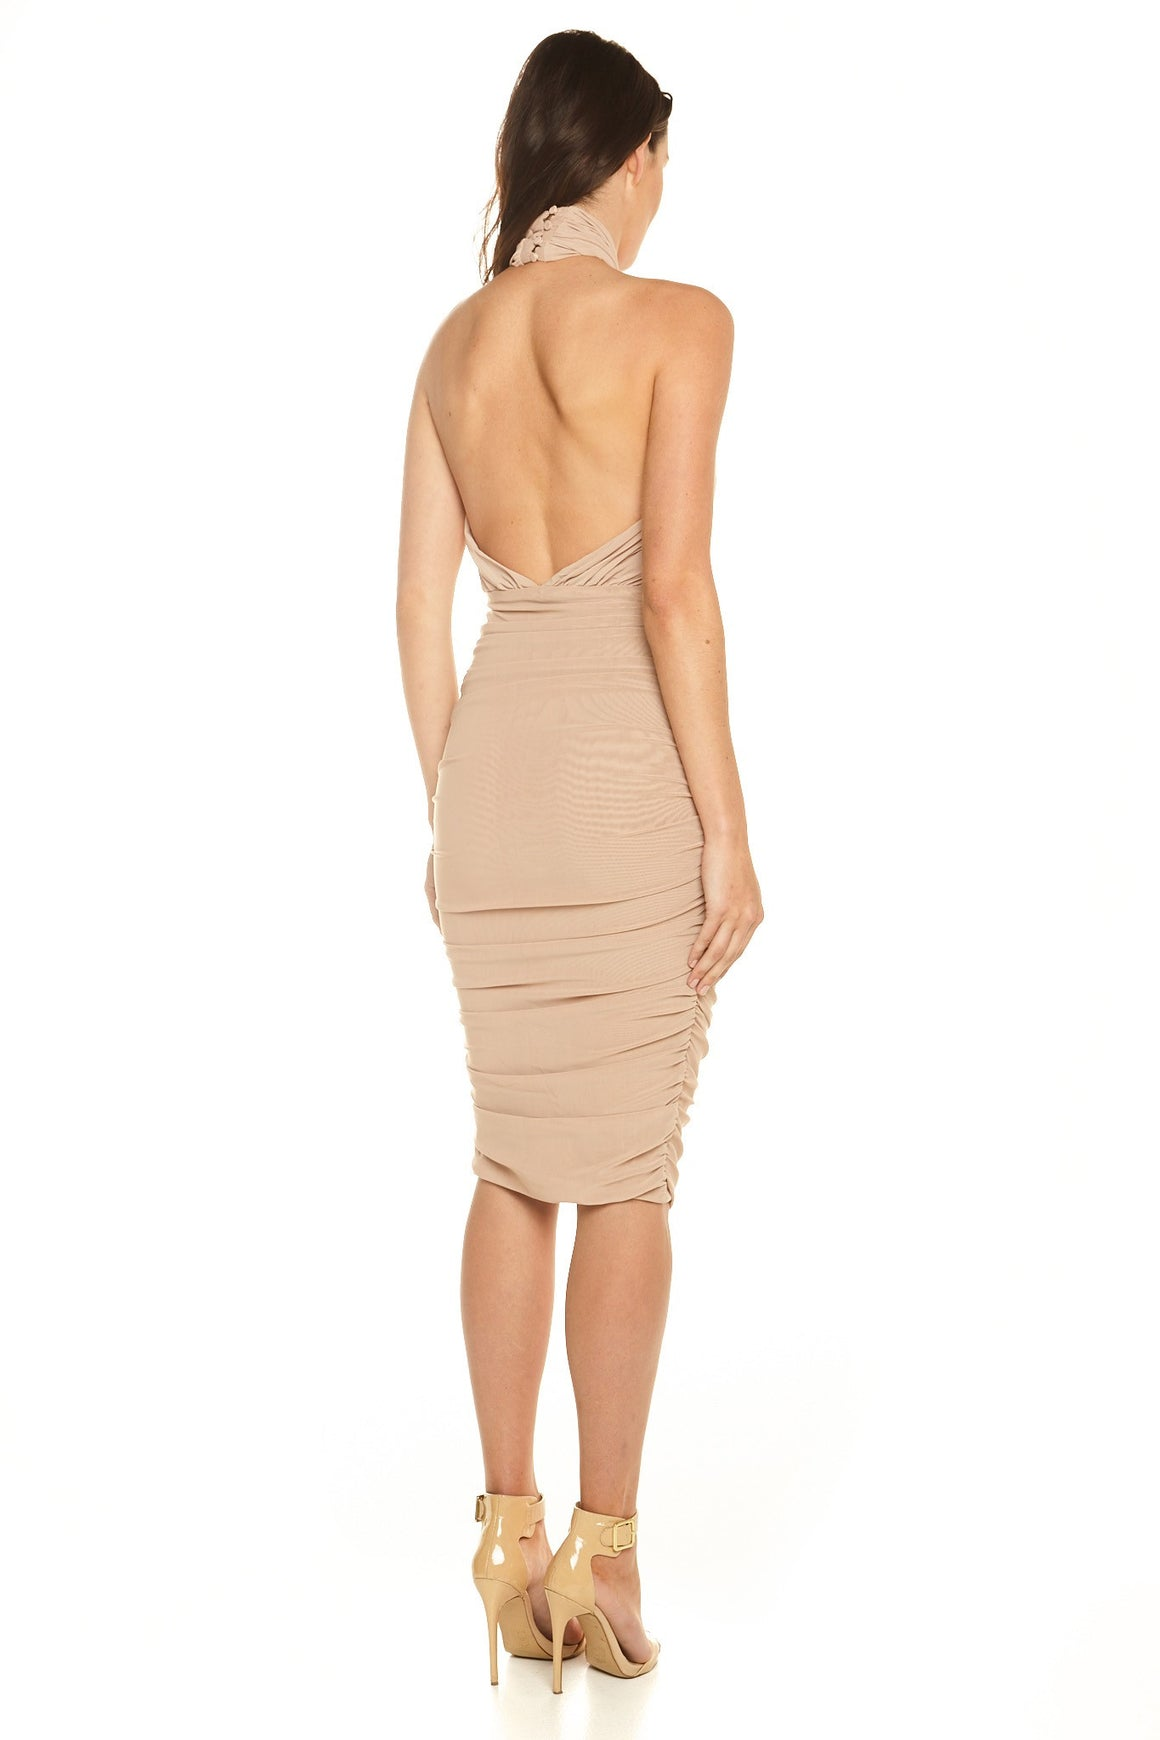 Micah Crossover Mesh Dress - Nude